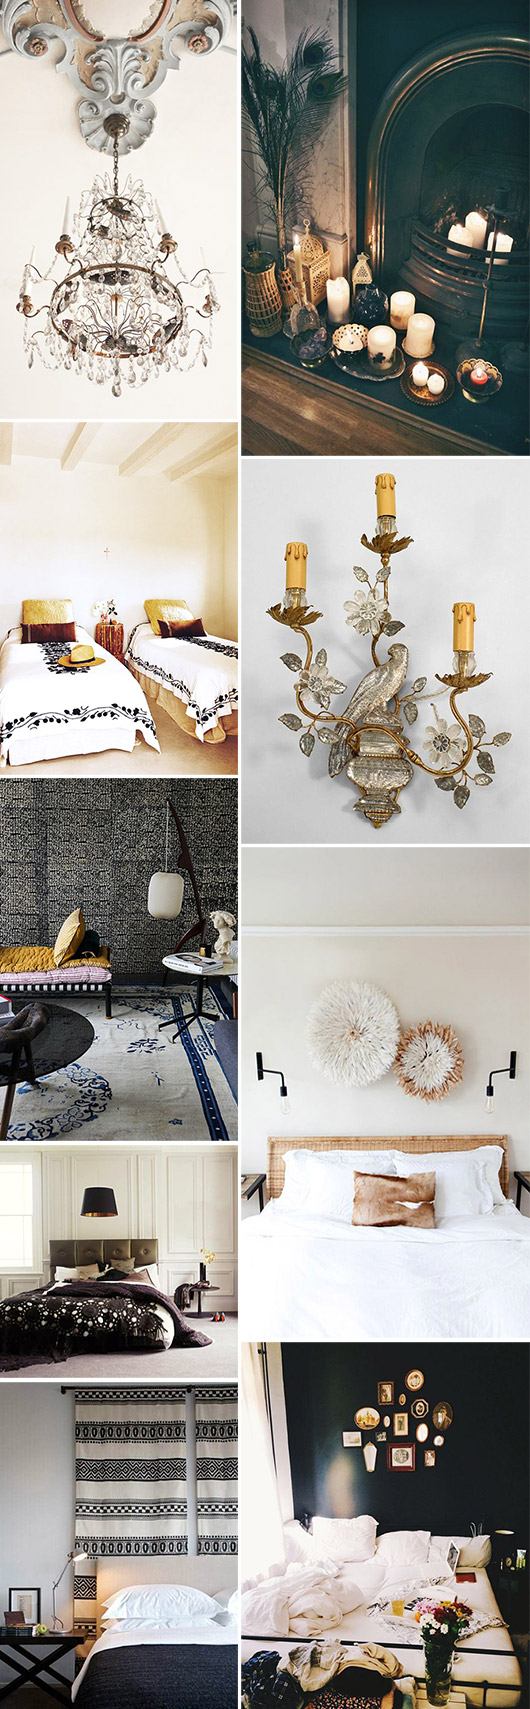 bohemian decor inspiration. / sfgirlbybay